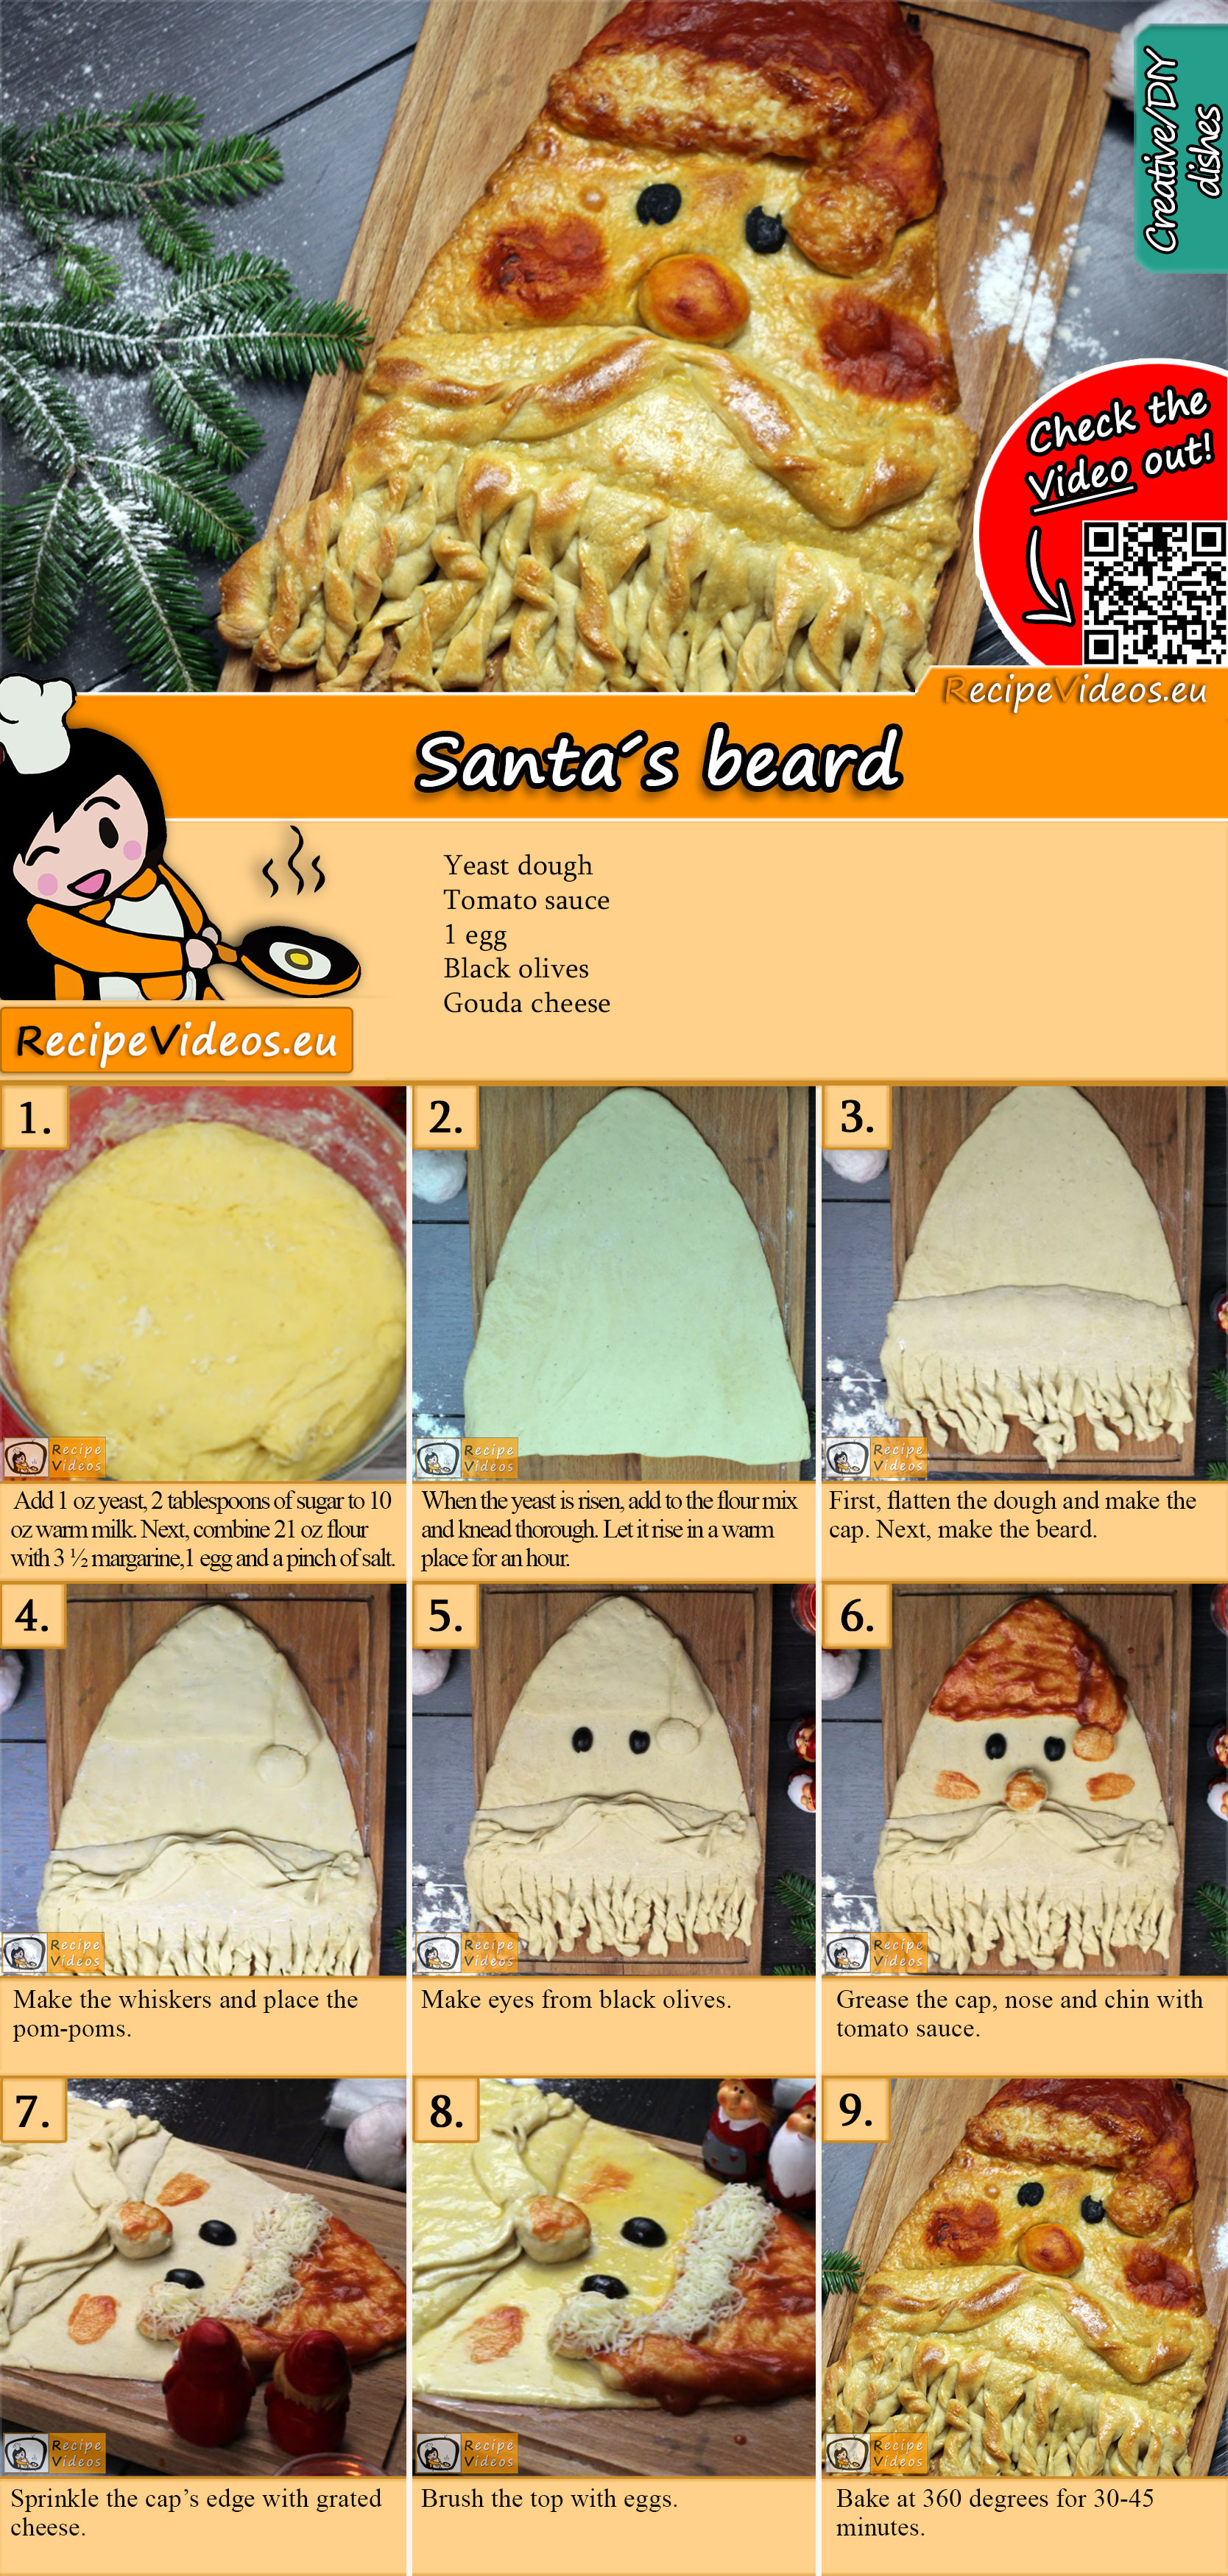 Santa's beard recipe with video